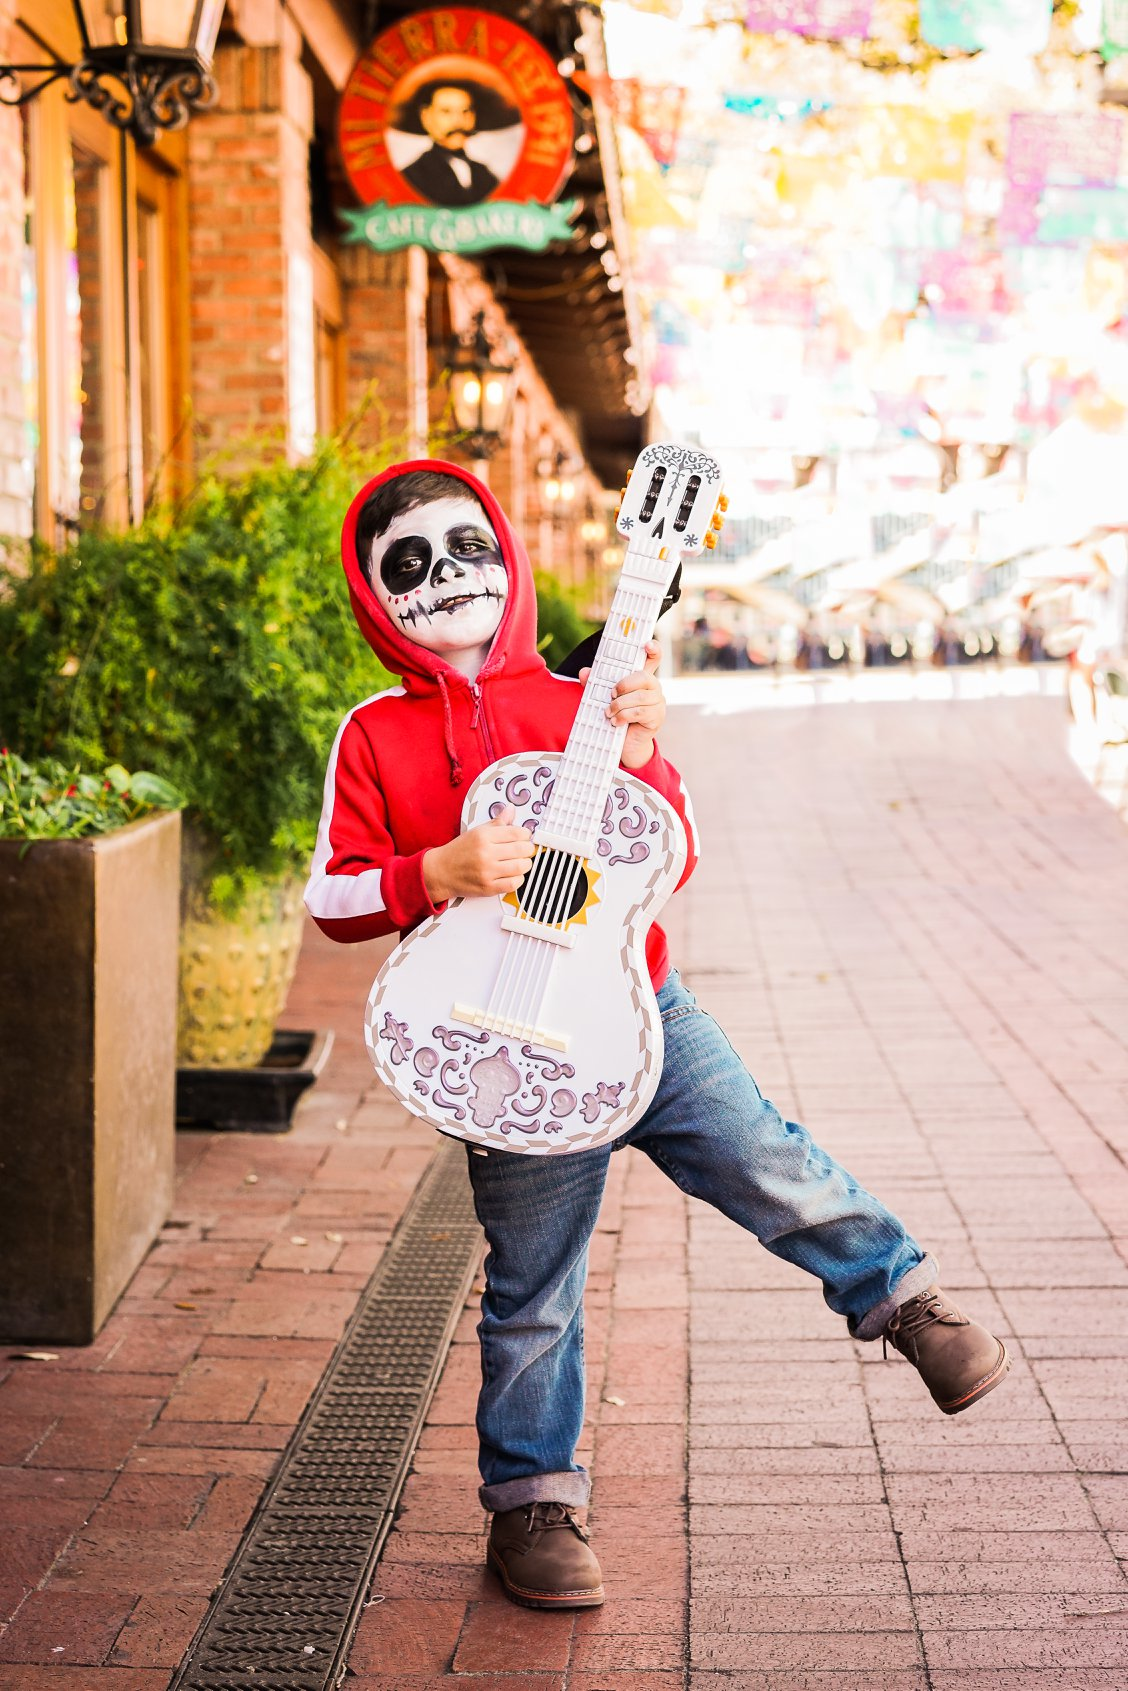 Coco-inspired San Antonio photos are making Texas 'un poco